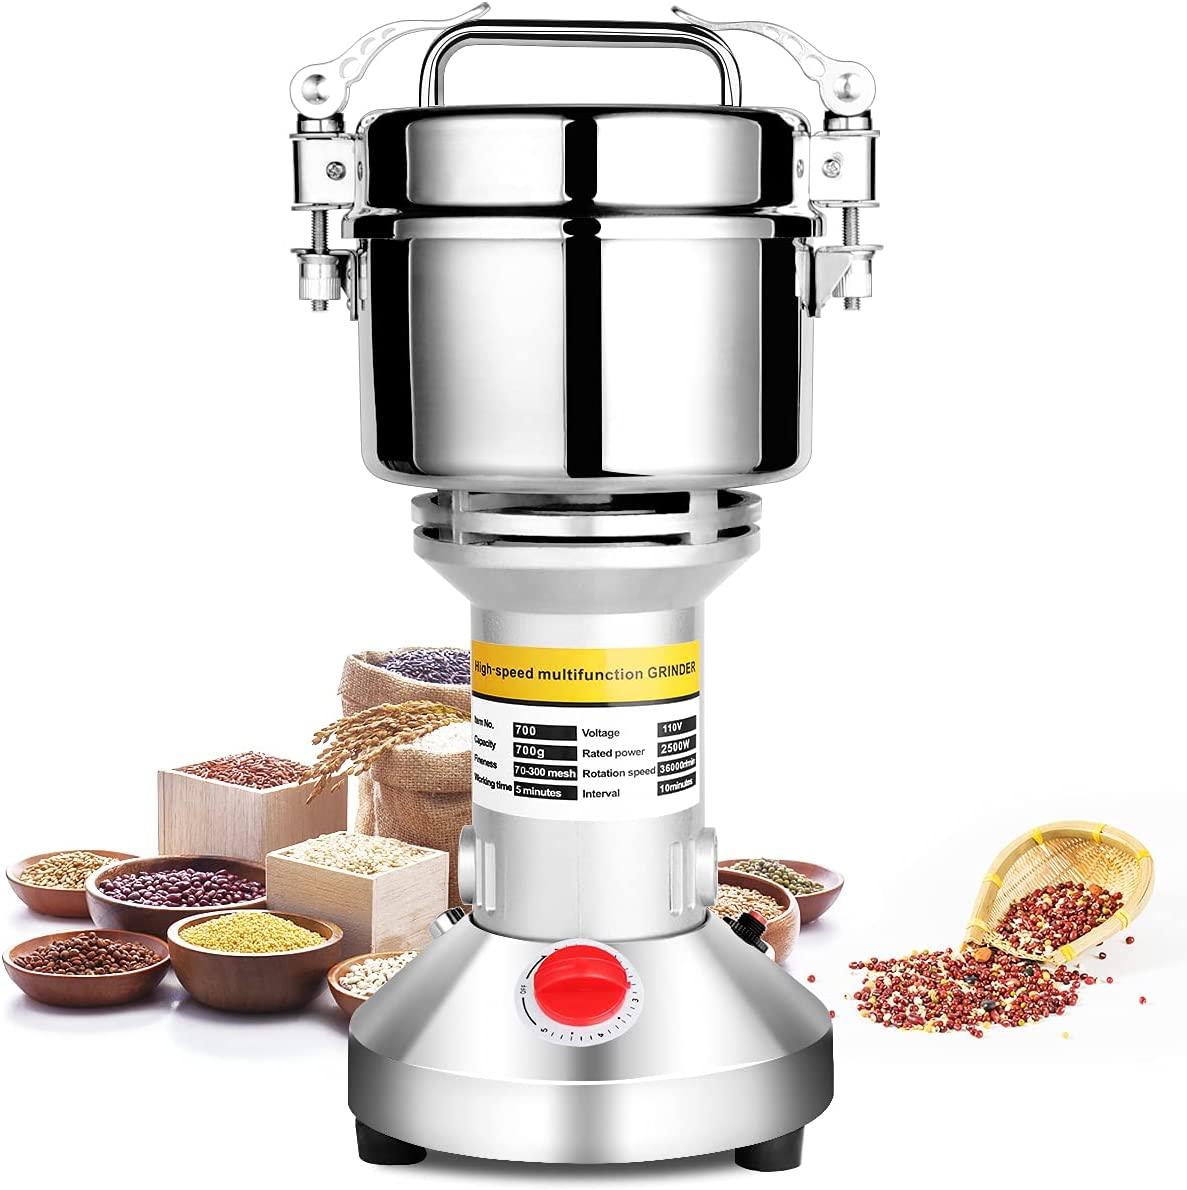 Large Ranking integrated 1st place discharge sale Gimify 700g Electric Grain Grinder Mill Spice Dry Herb